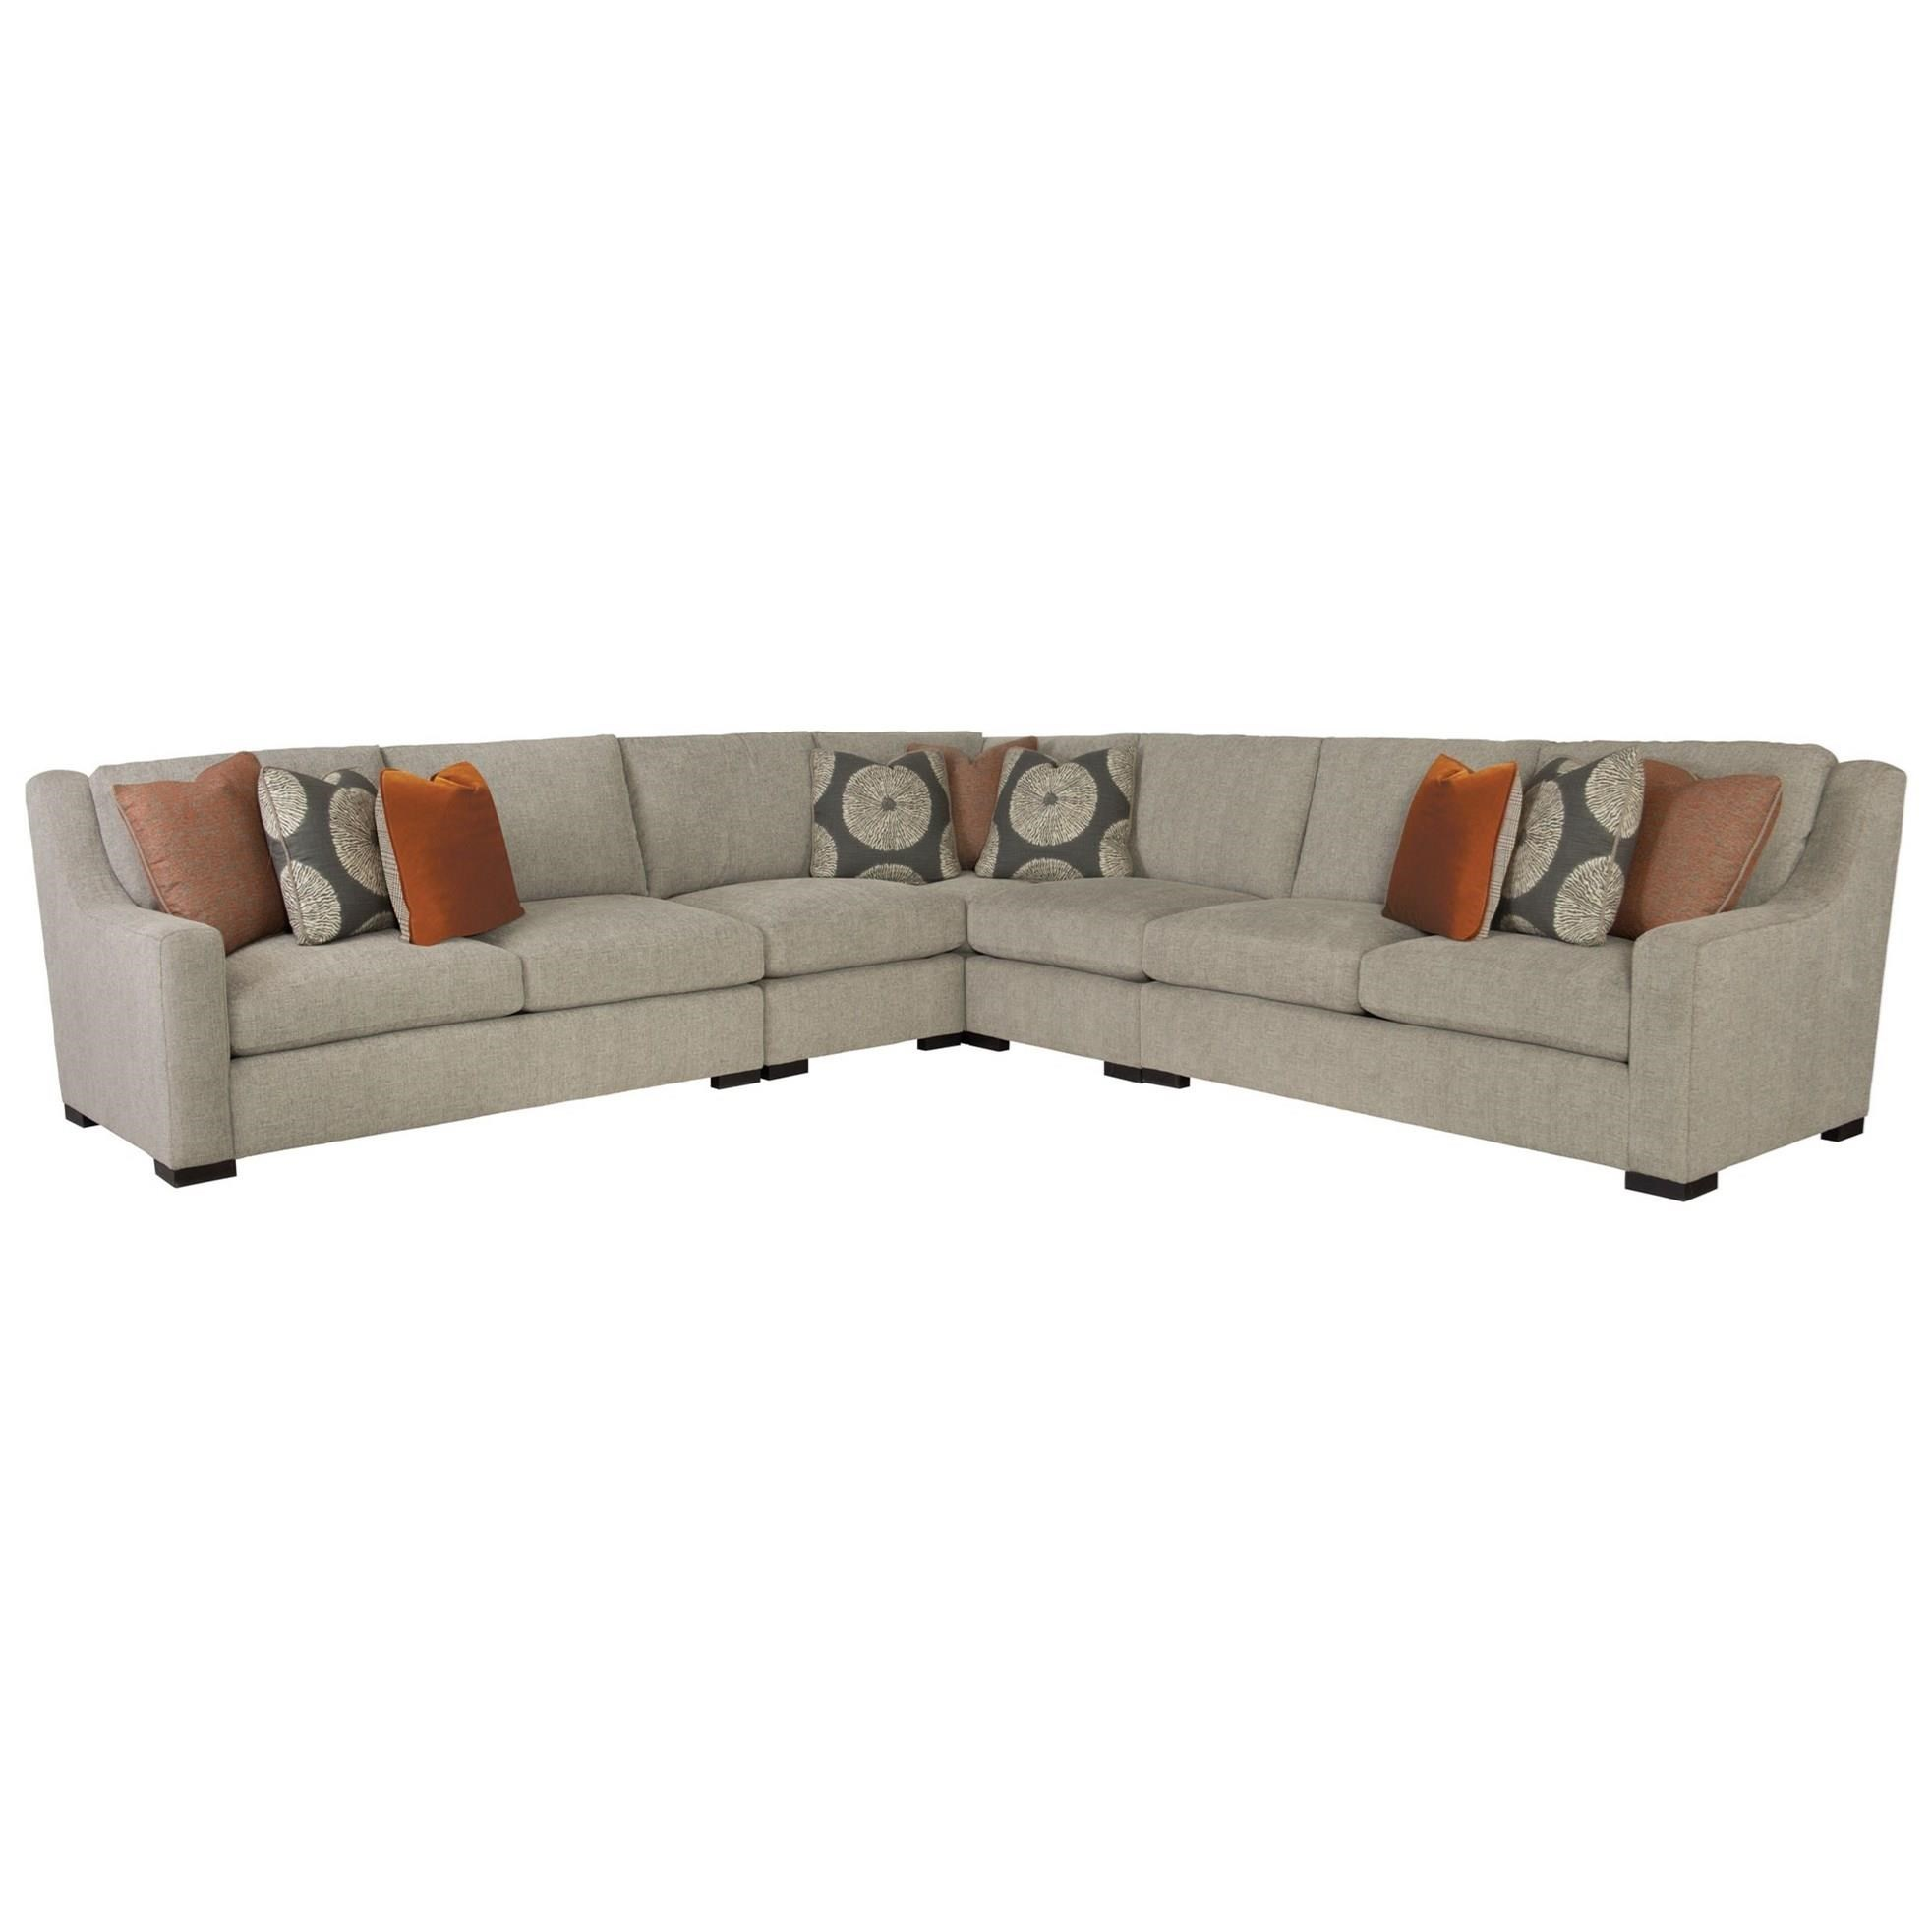 Contemporary Sectional with Spring Down Cushions